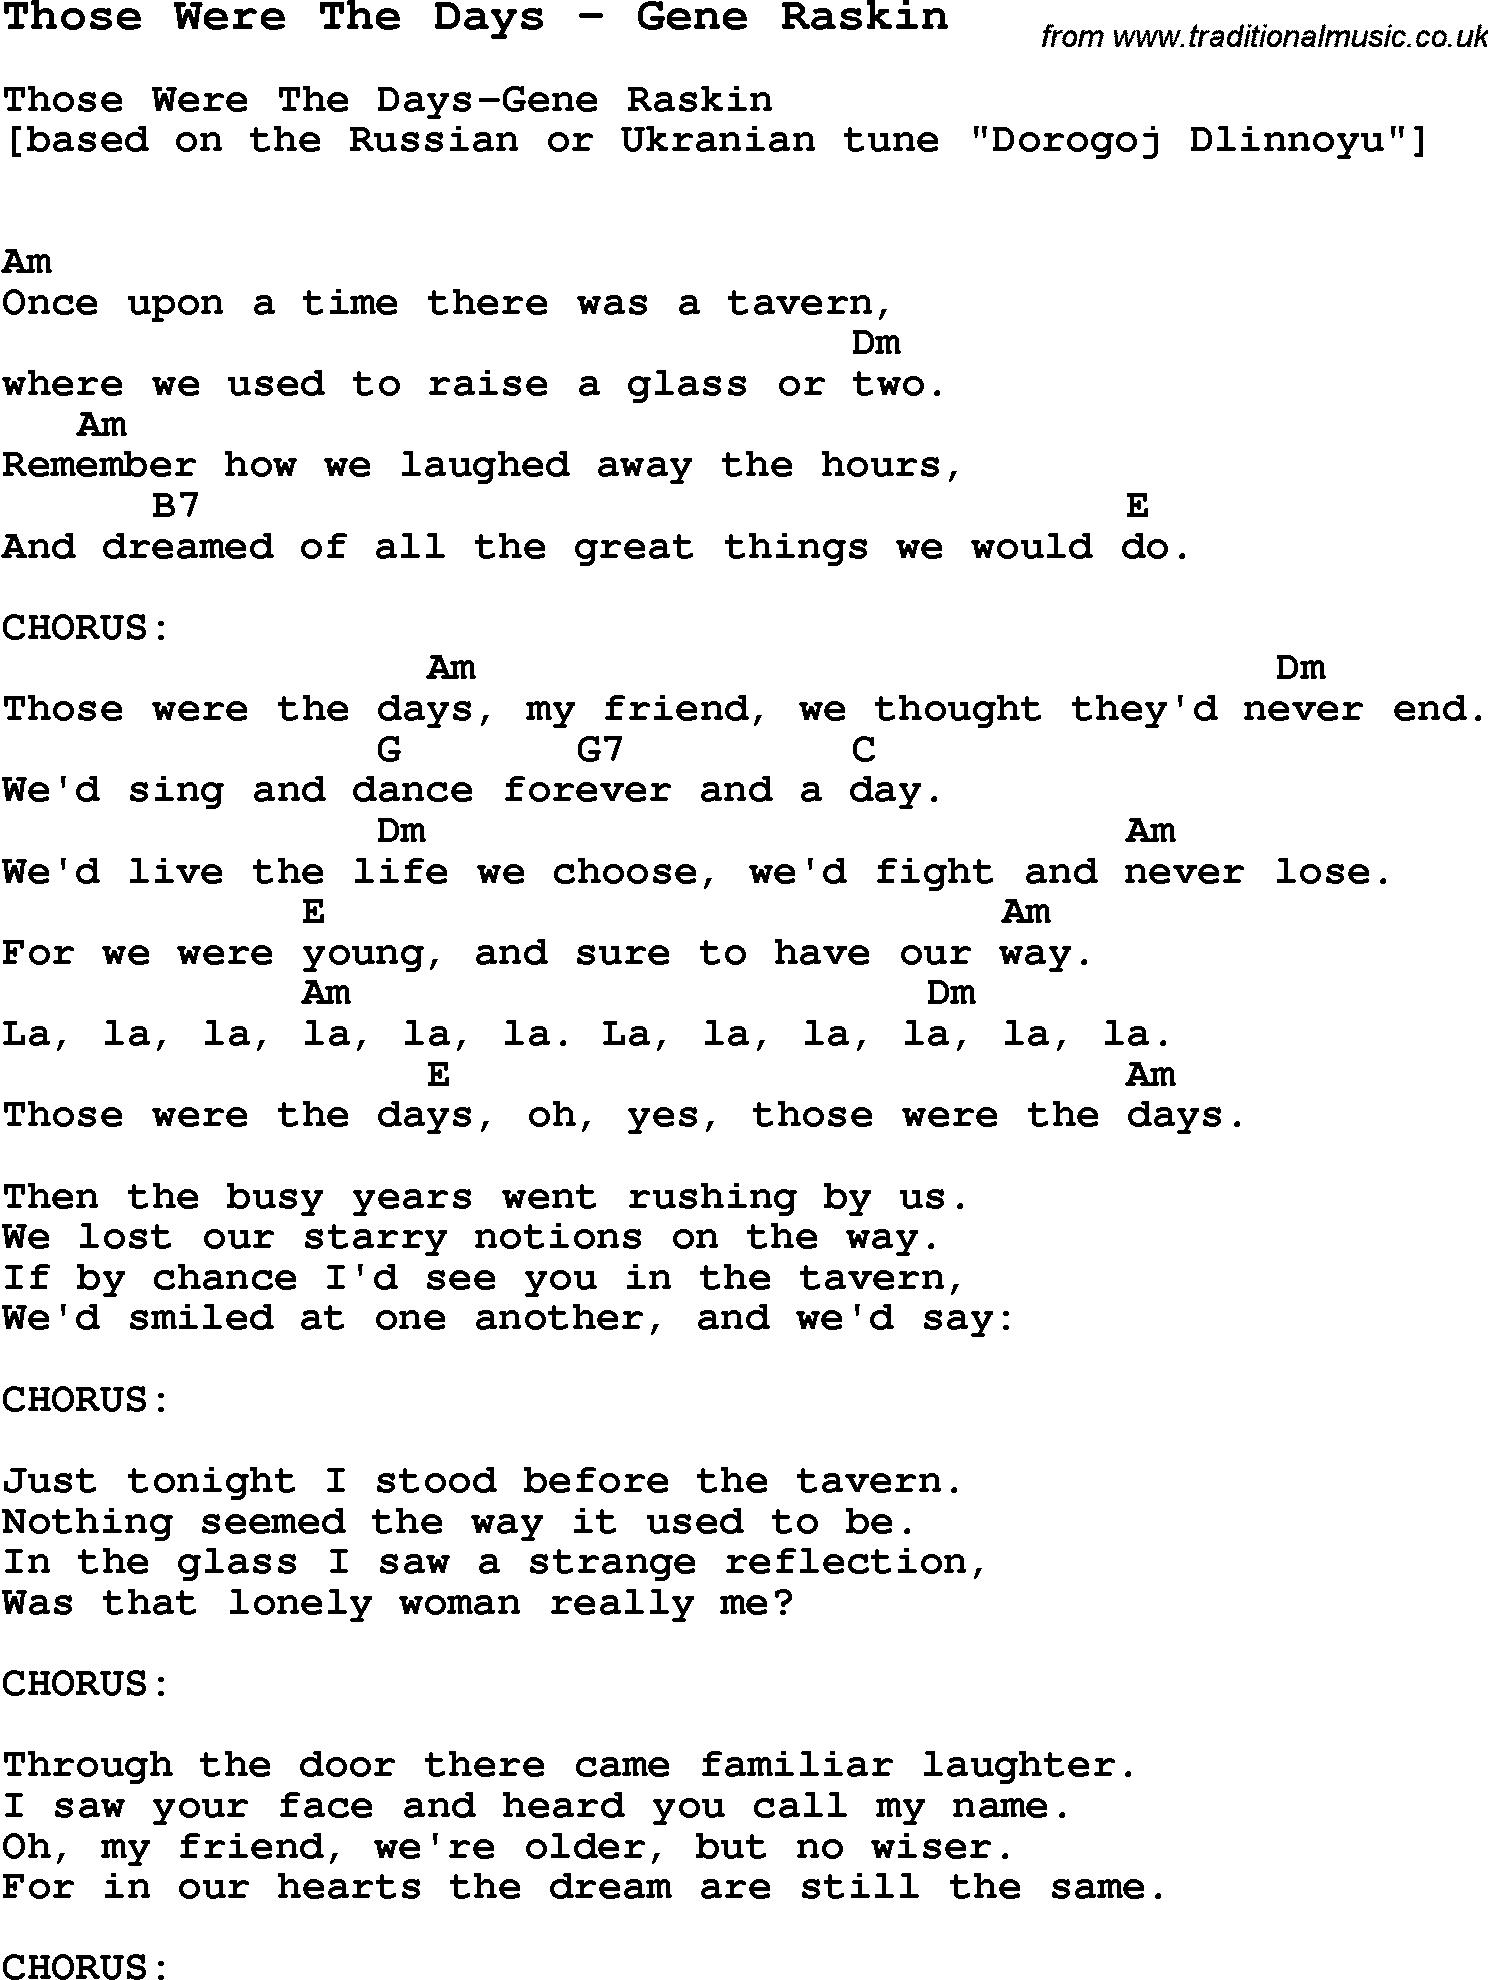 Song those were the days by gene raskin with lyrics for vocal song those were the days by gene raskin song lyric for vocal performance plus accompaniment chords for ukulele guitar banjo etc hexwebz Gallery